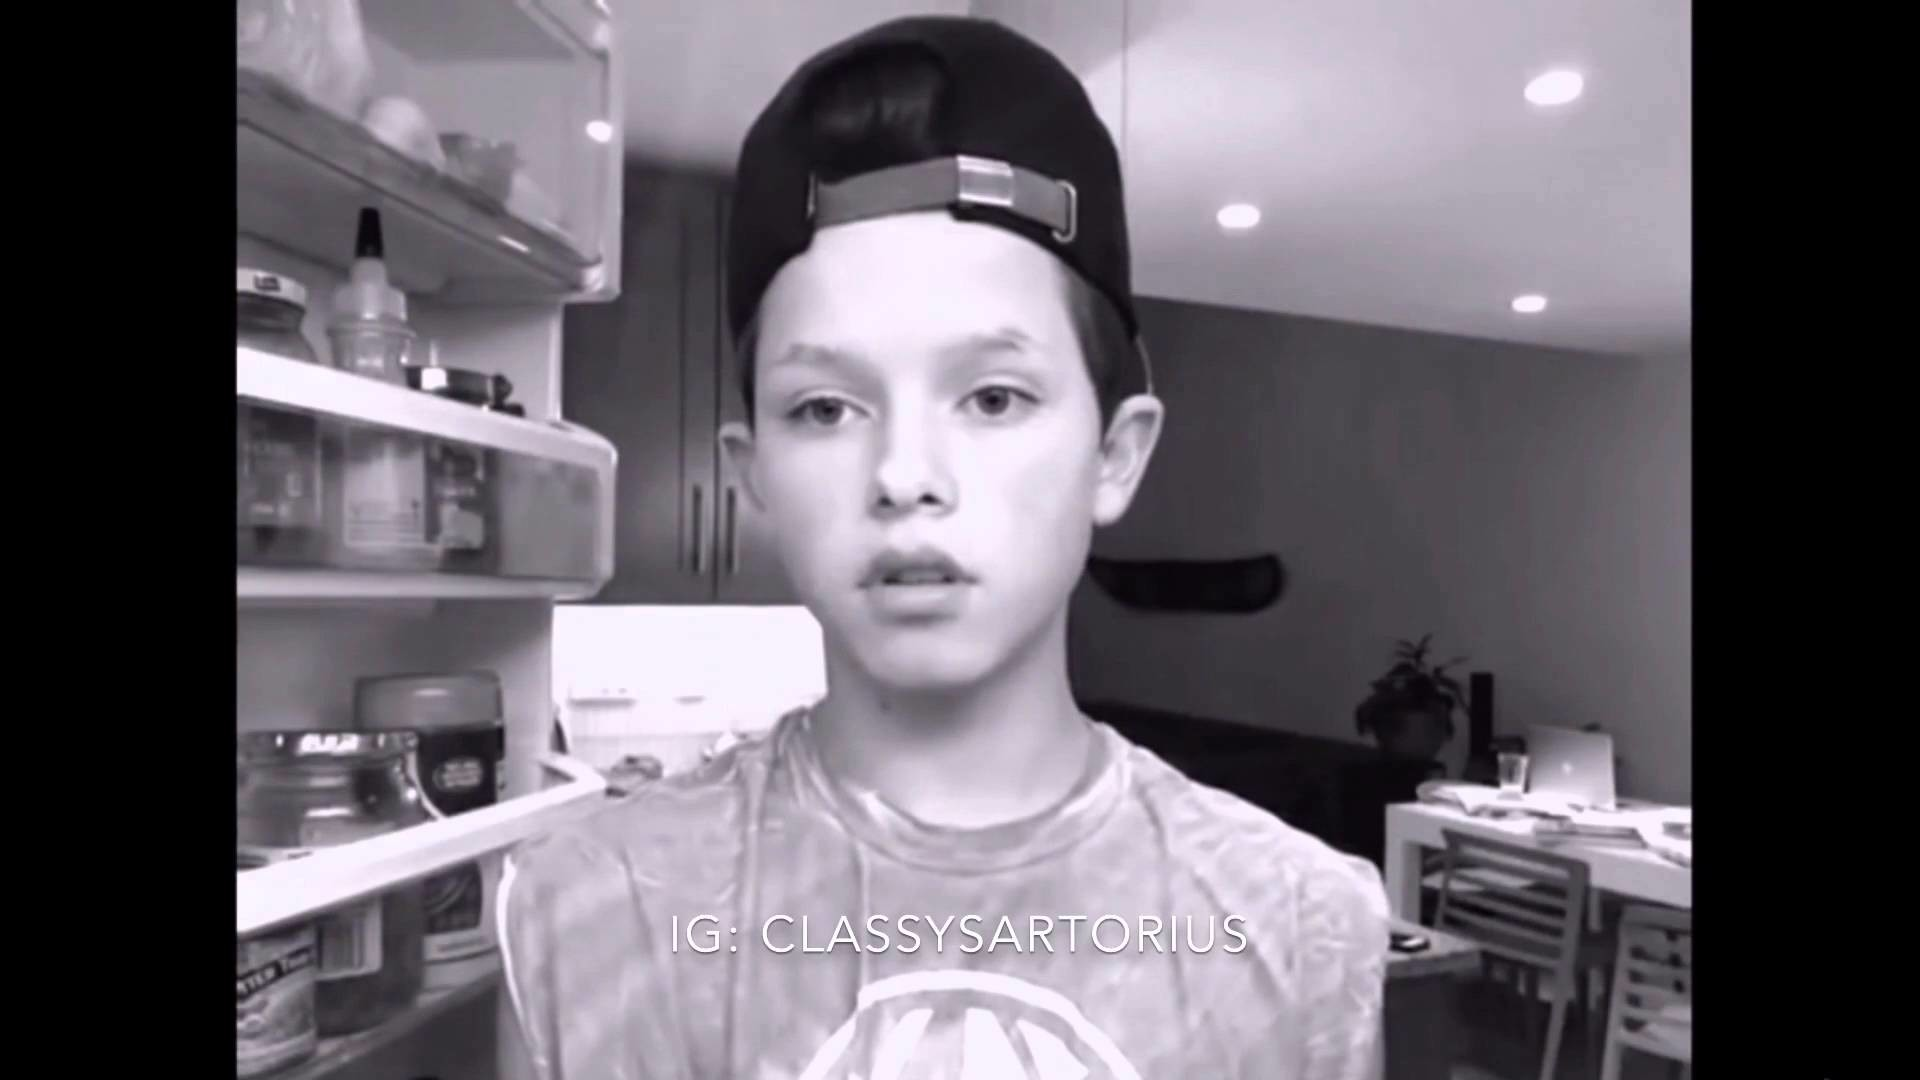 Jacob sartorius · I wish that you were here or I were there or we were  together anywhere 😊